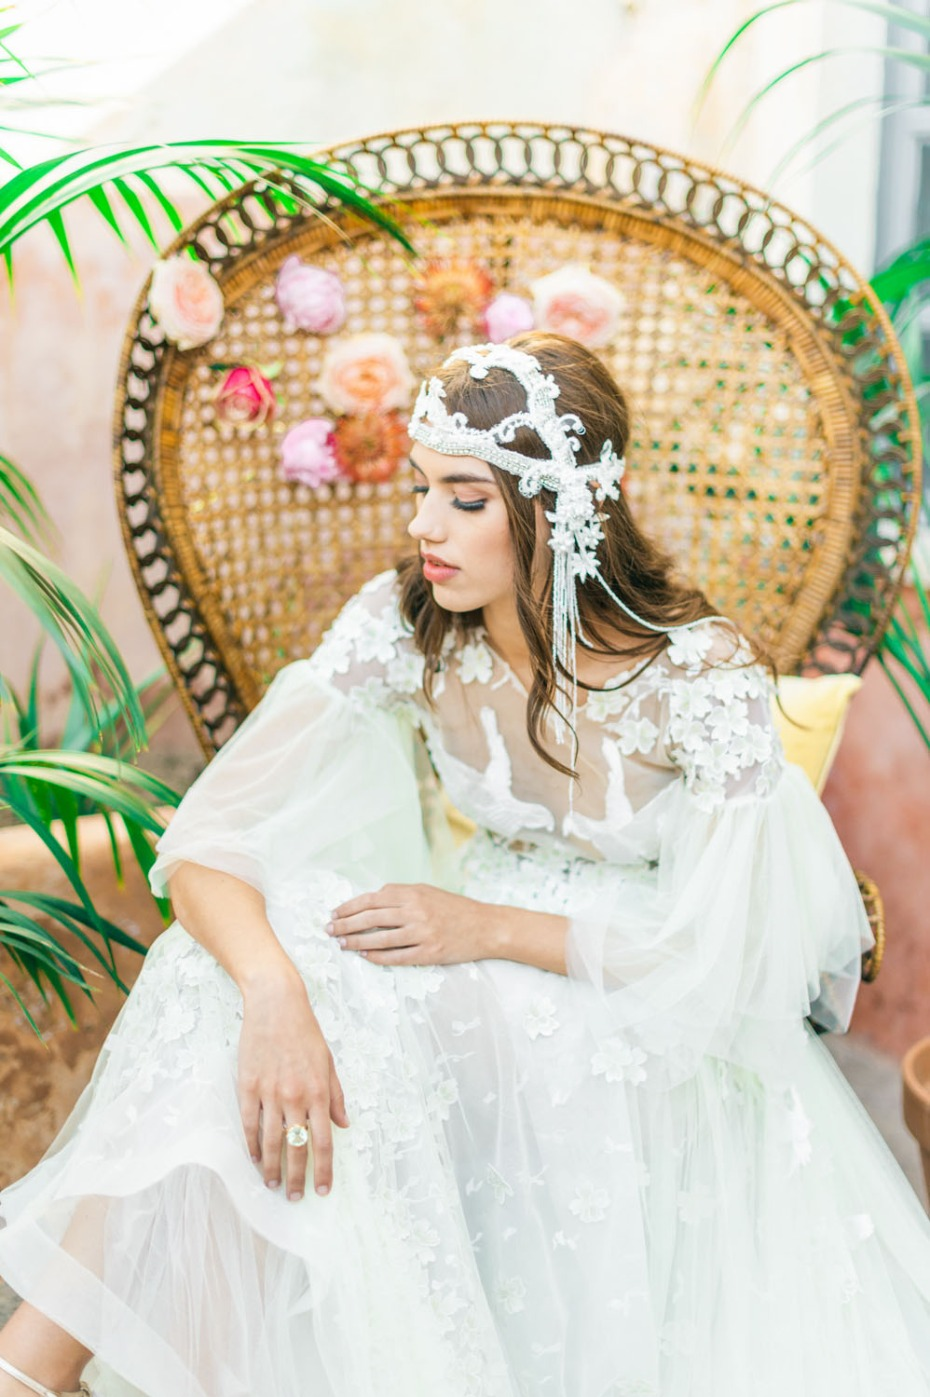 The 70s inspired bridal look